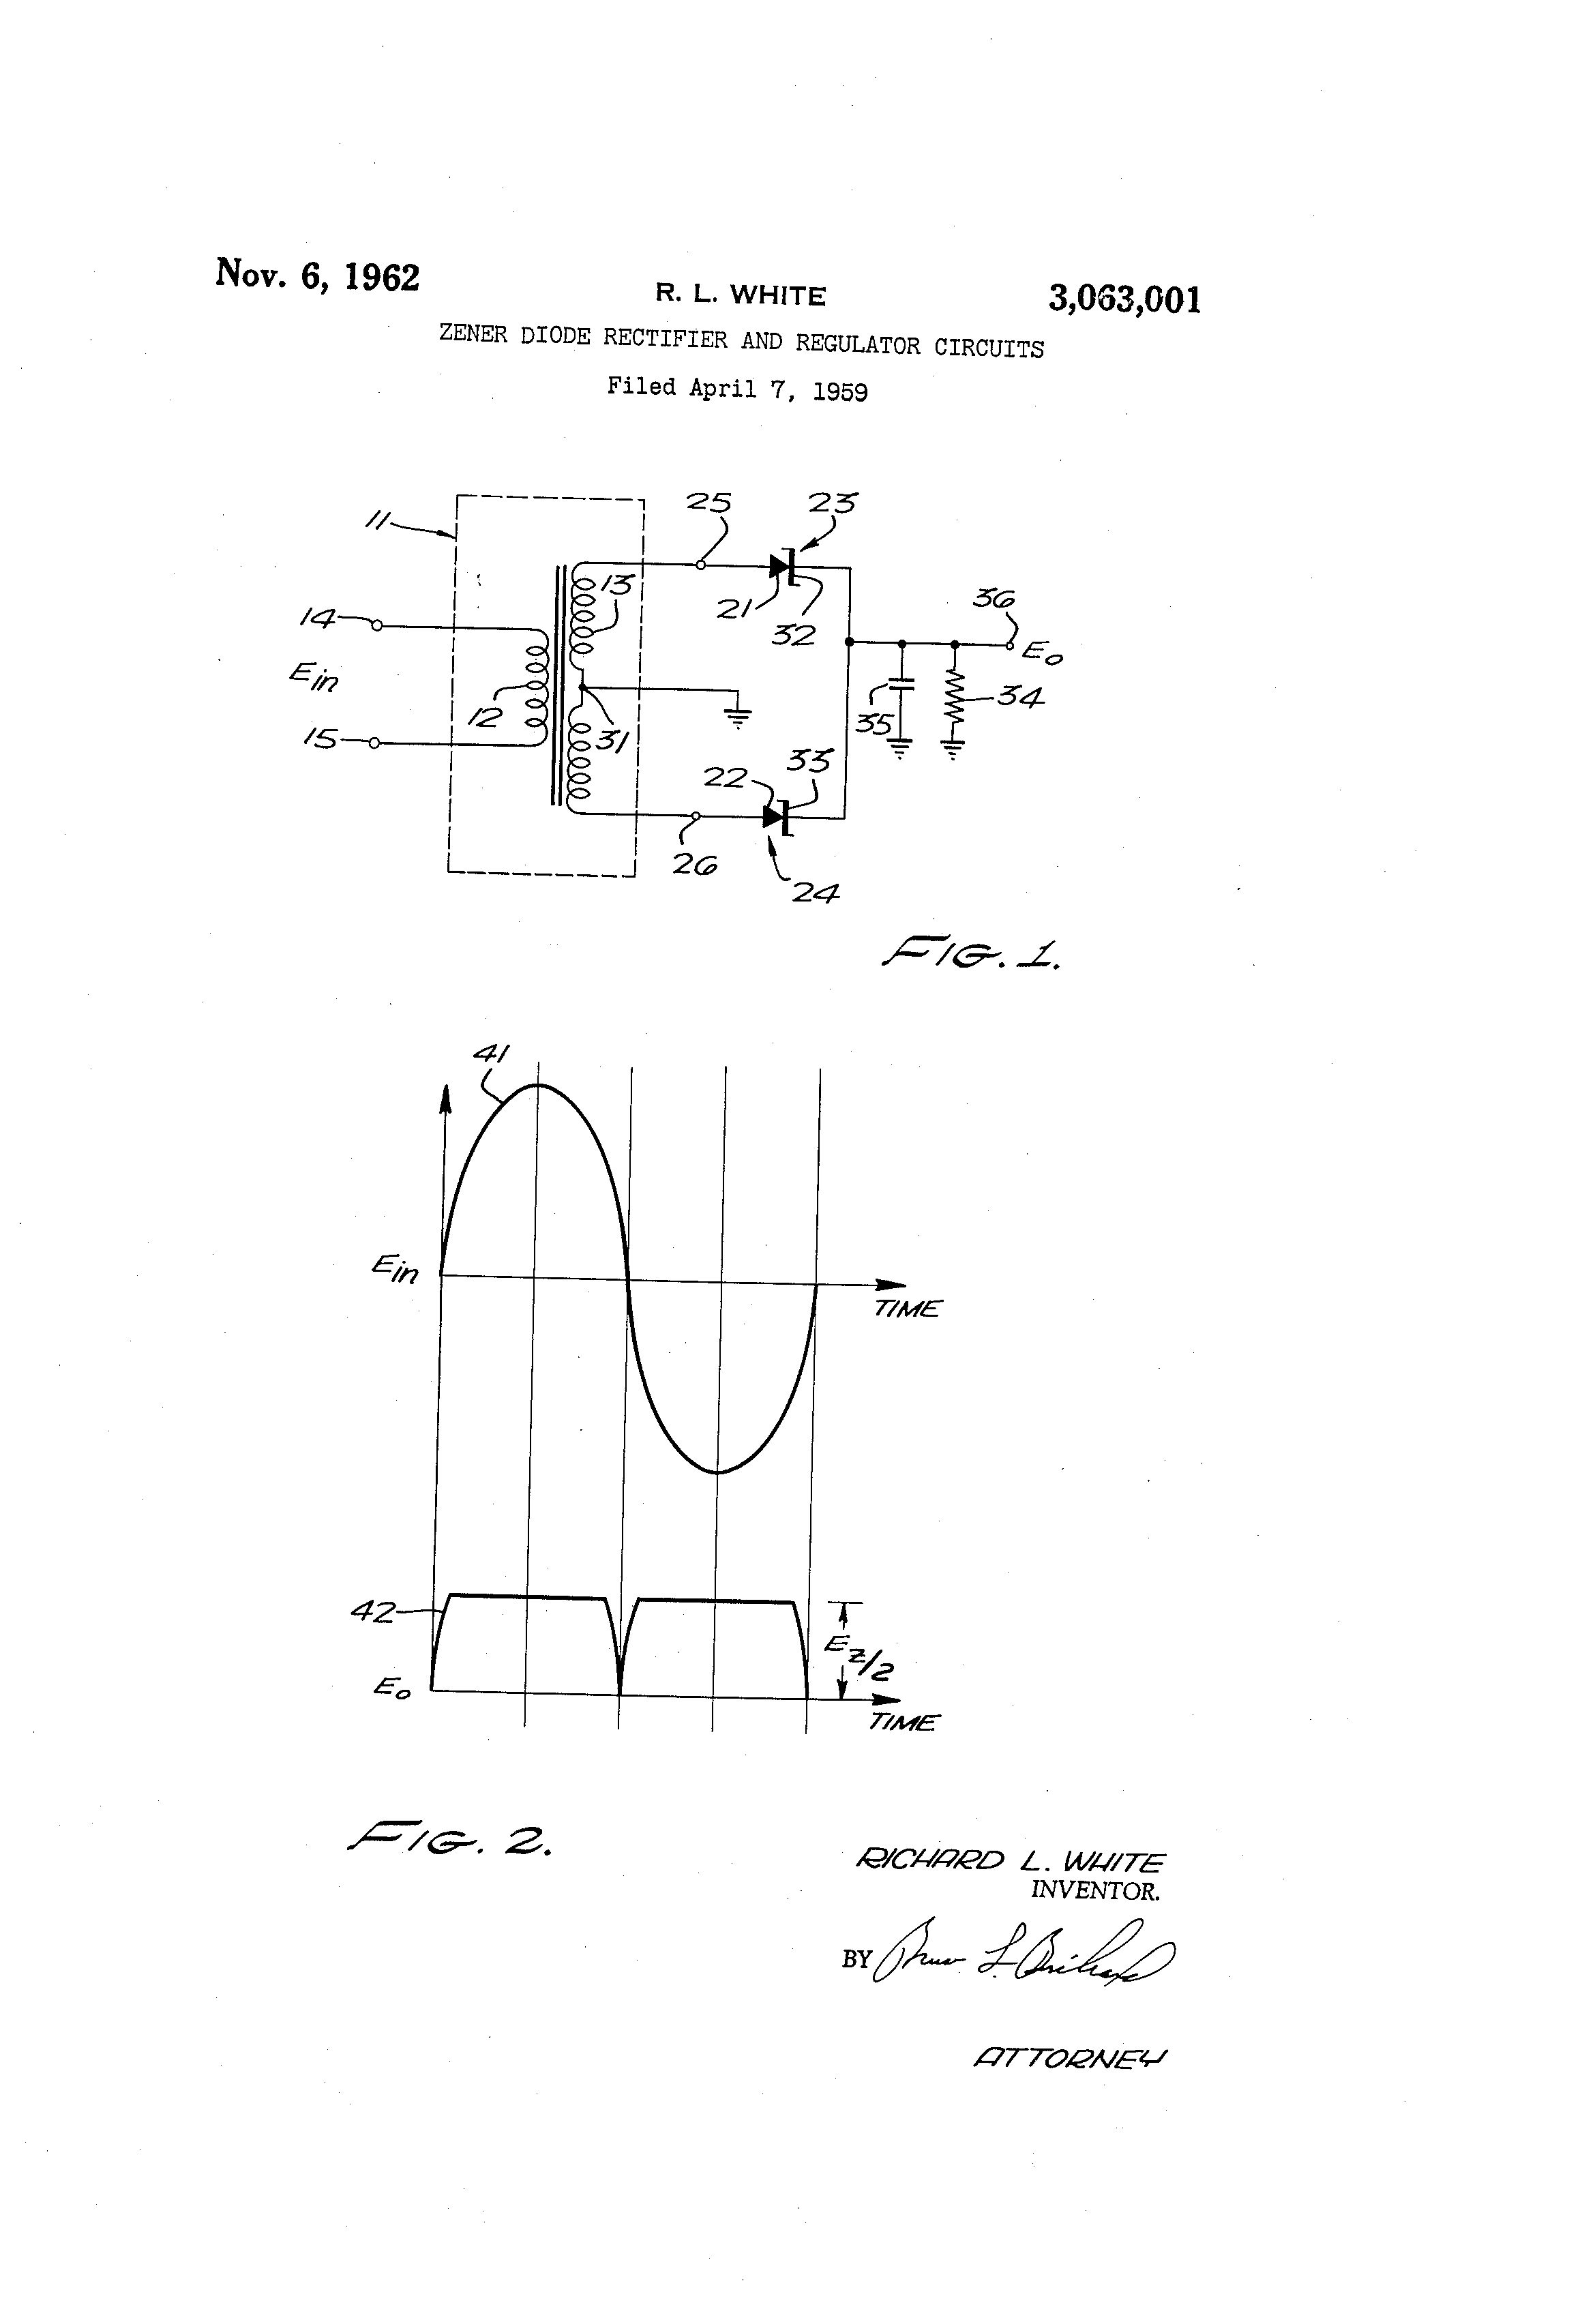 Patent Us3063001 Zener Diode Rectifier And Regulator Circuits Voltage Circuit Pictures For Their Us 3063001 A Abstract Available In Images1 Drawing